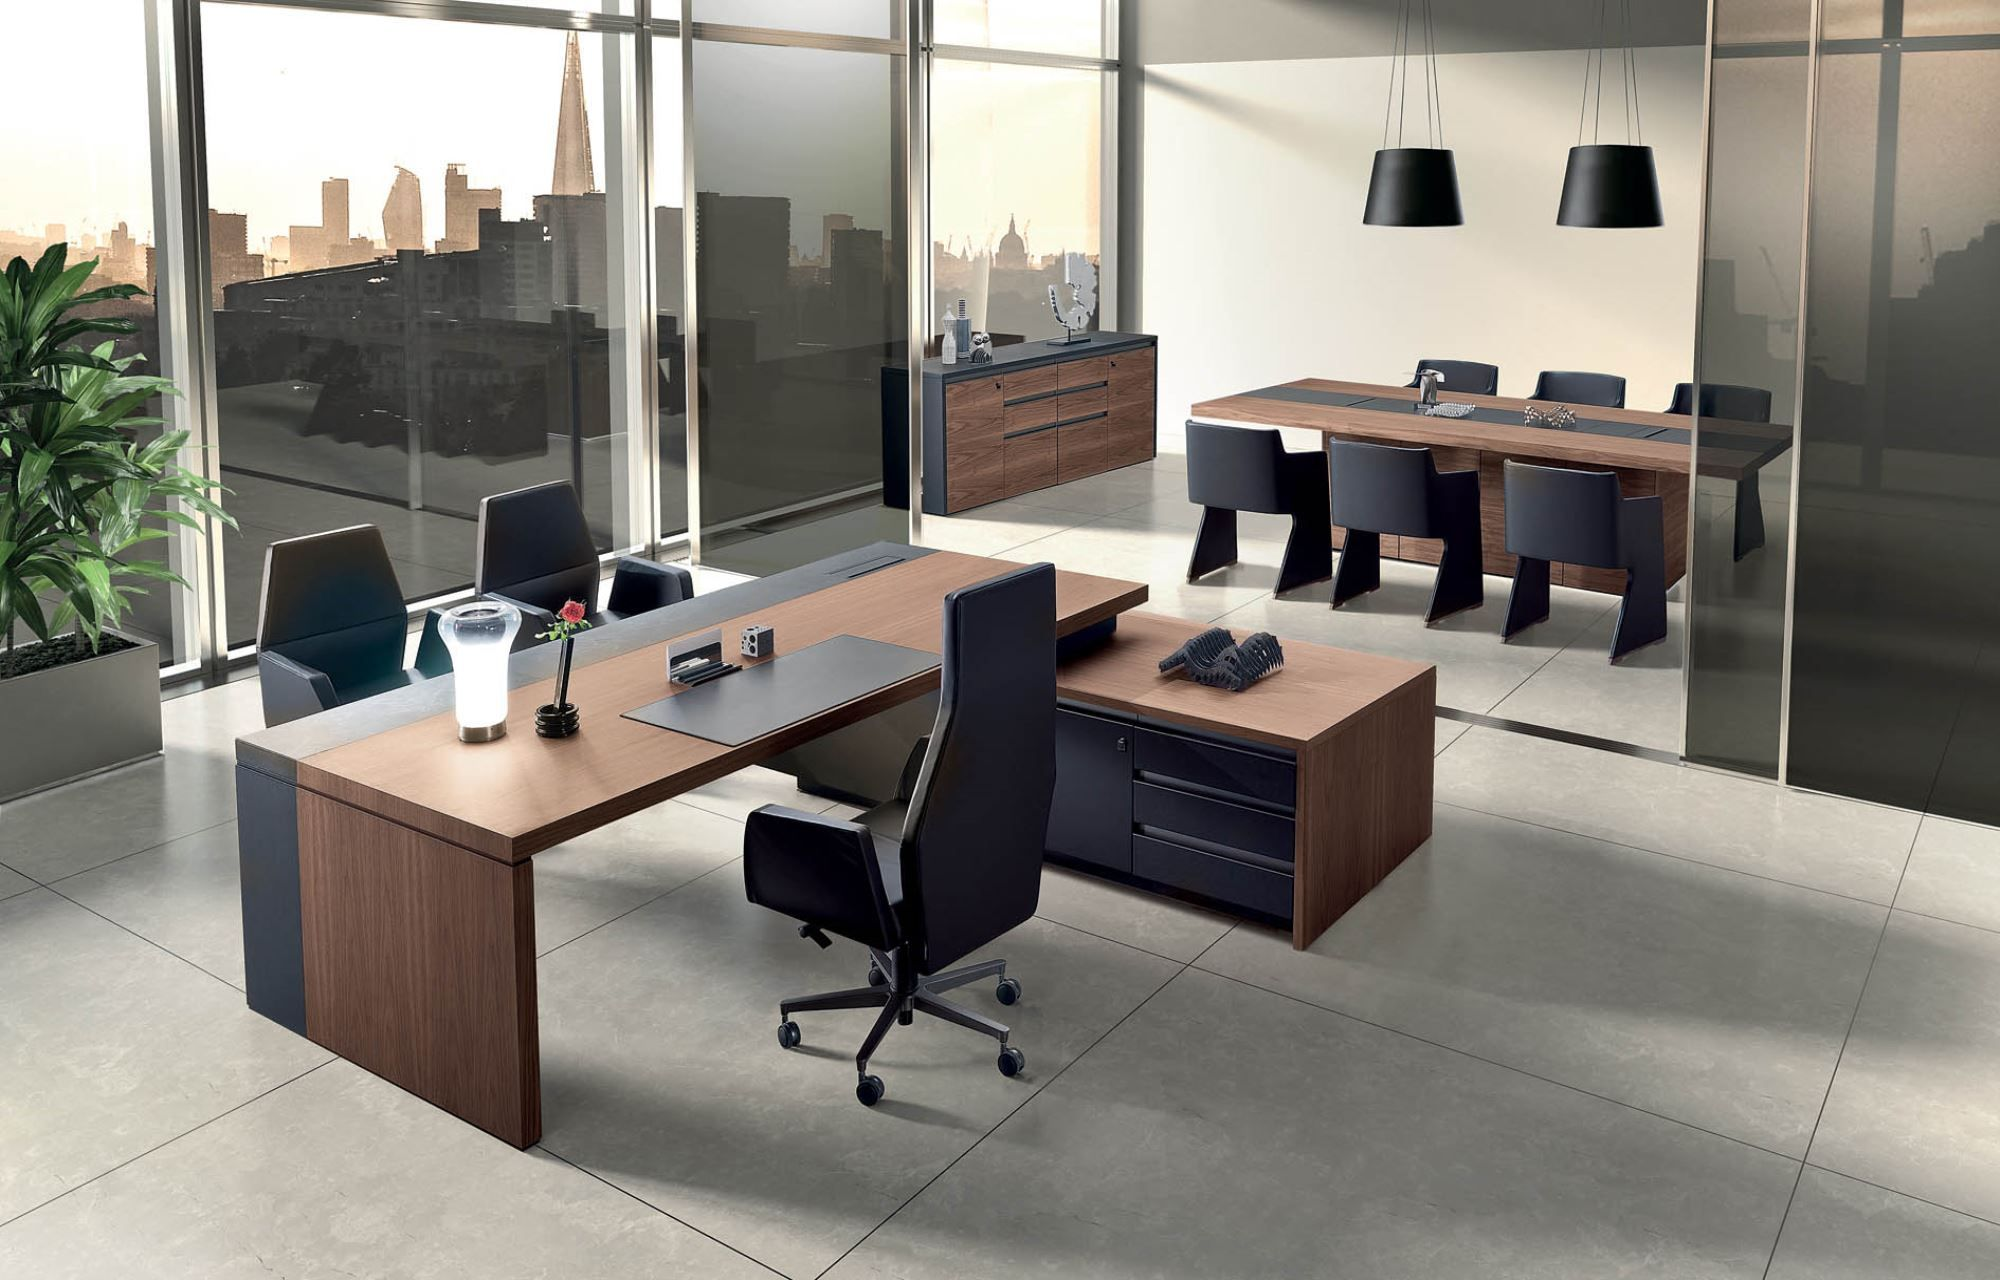 Kefa Office Collection I 4 Mariani S R L In 2020 Modern Home Offices Office Collections Home